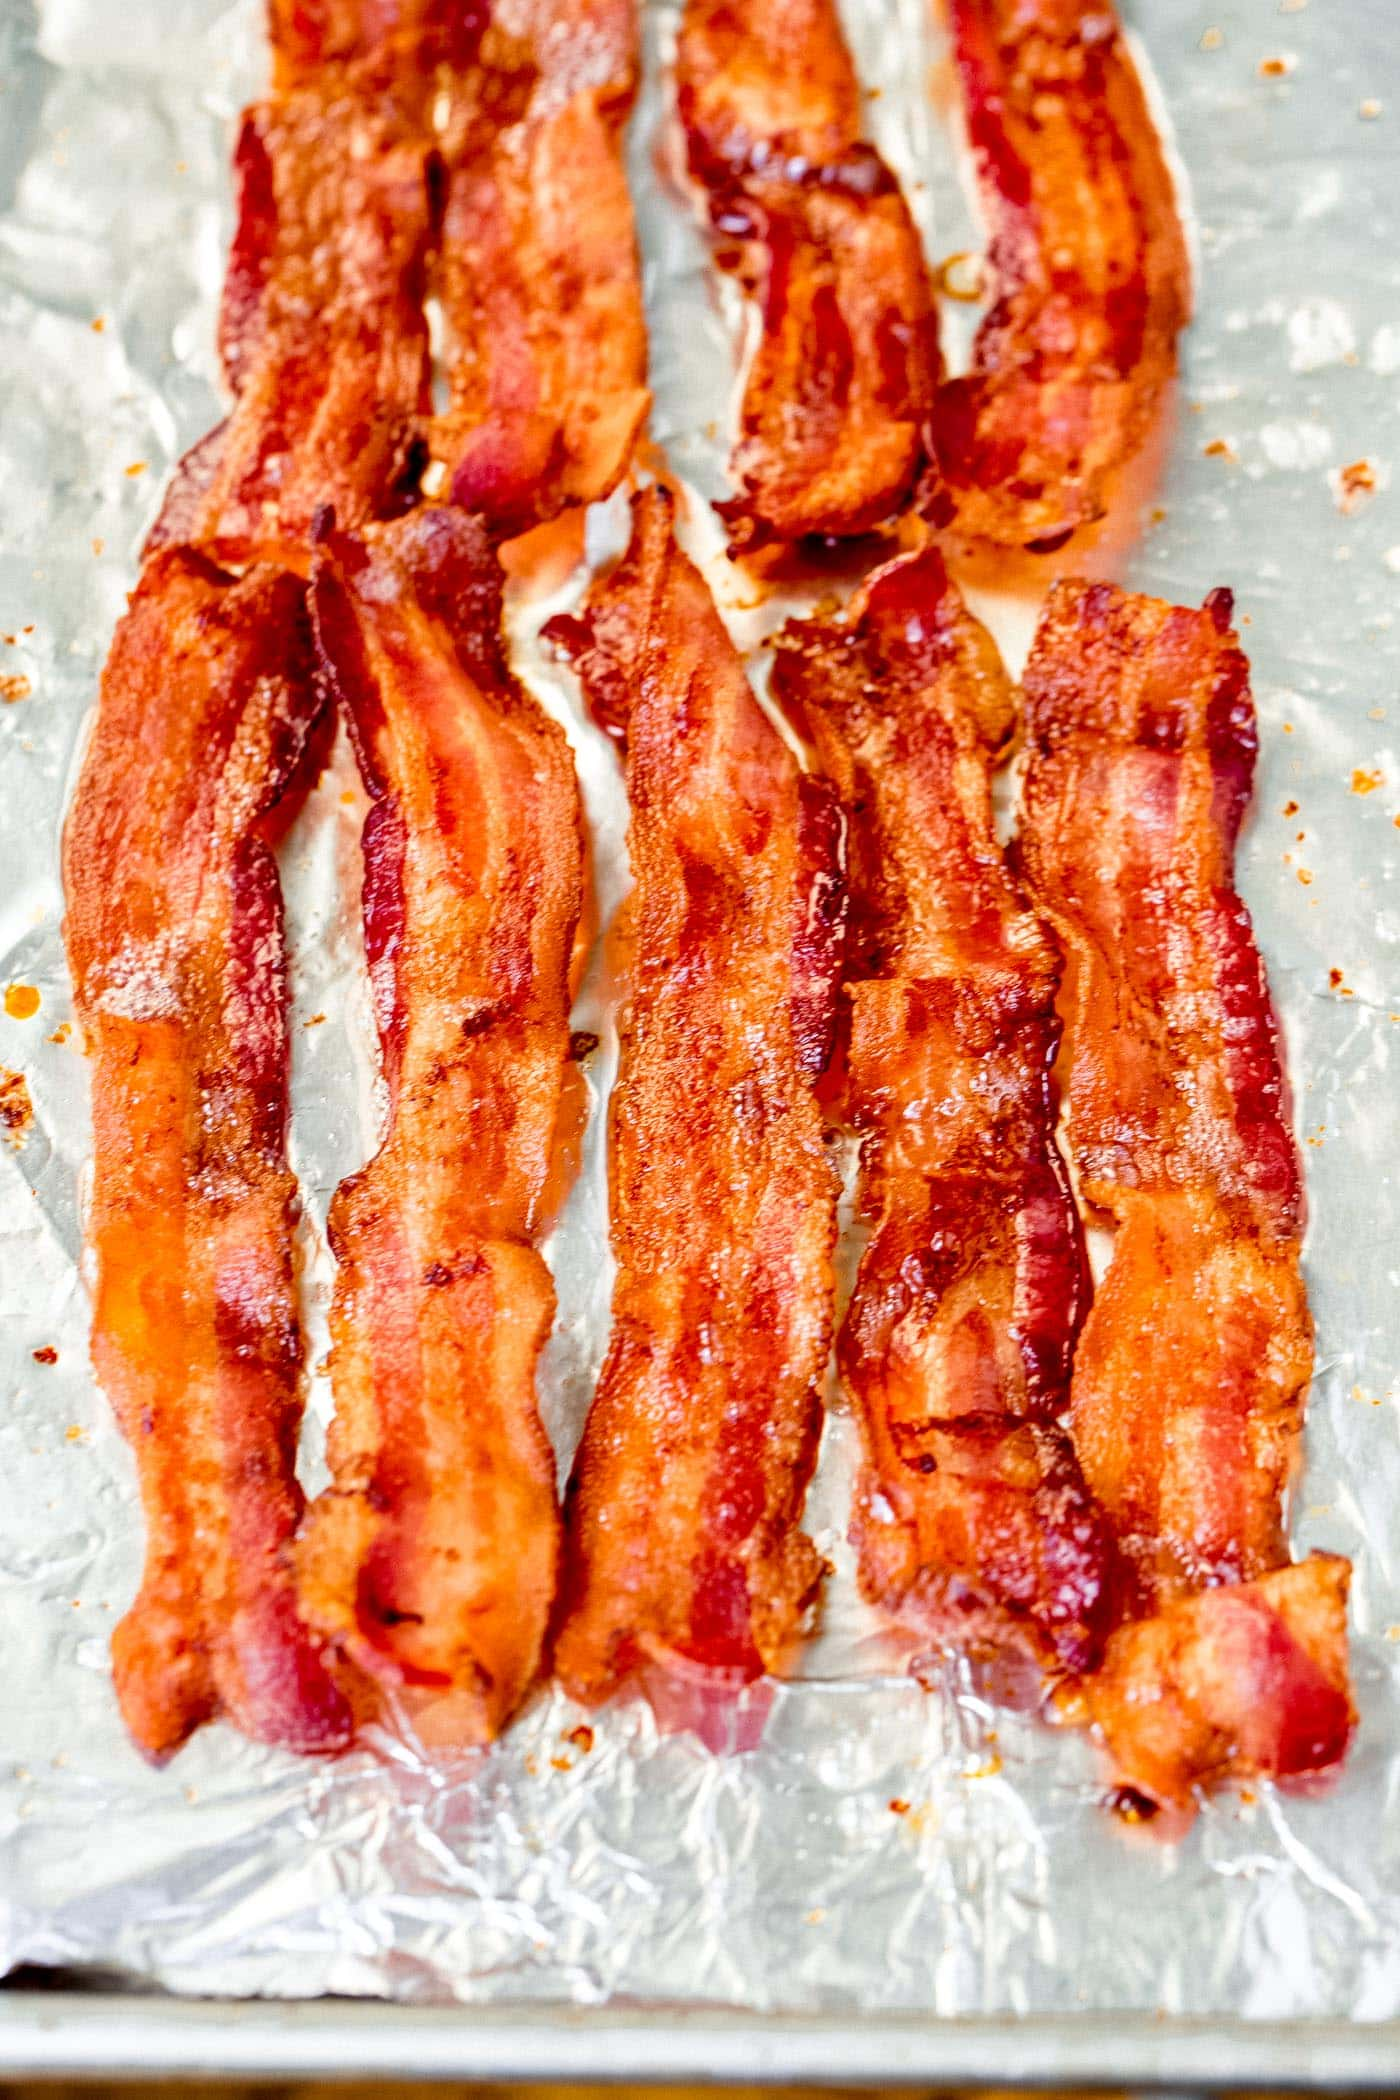 Slices of perfectly crisp bacon on a baking sheet lined with foil.